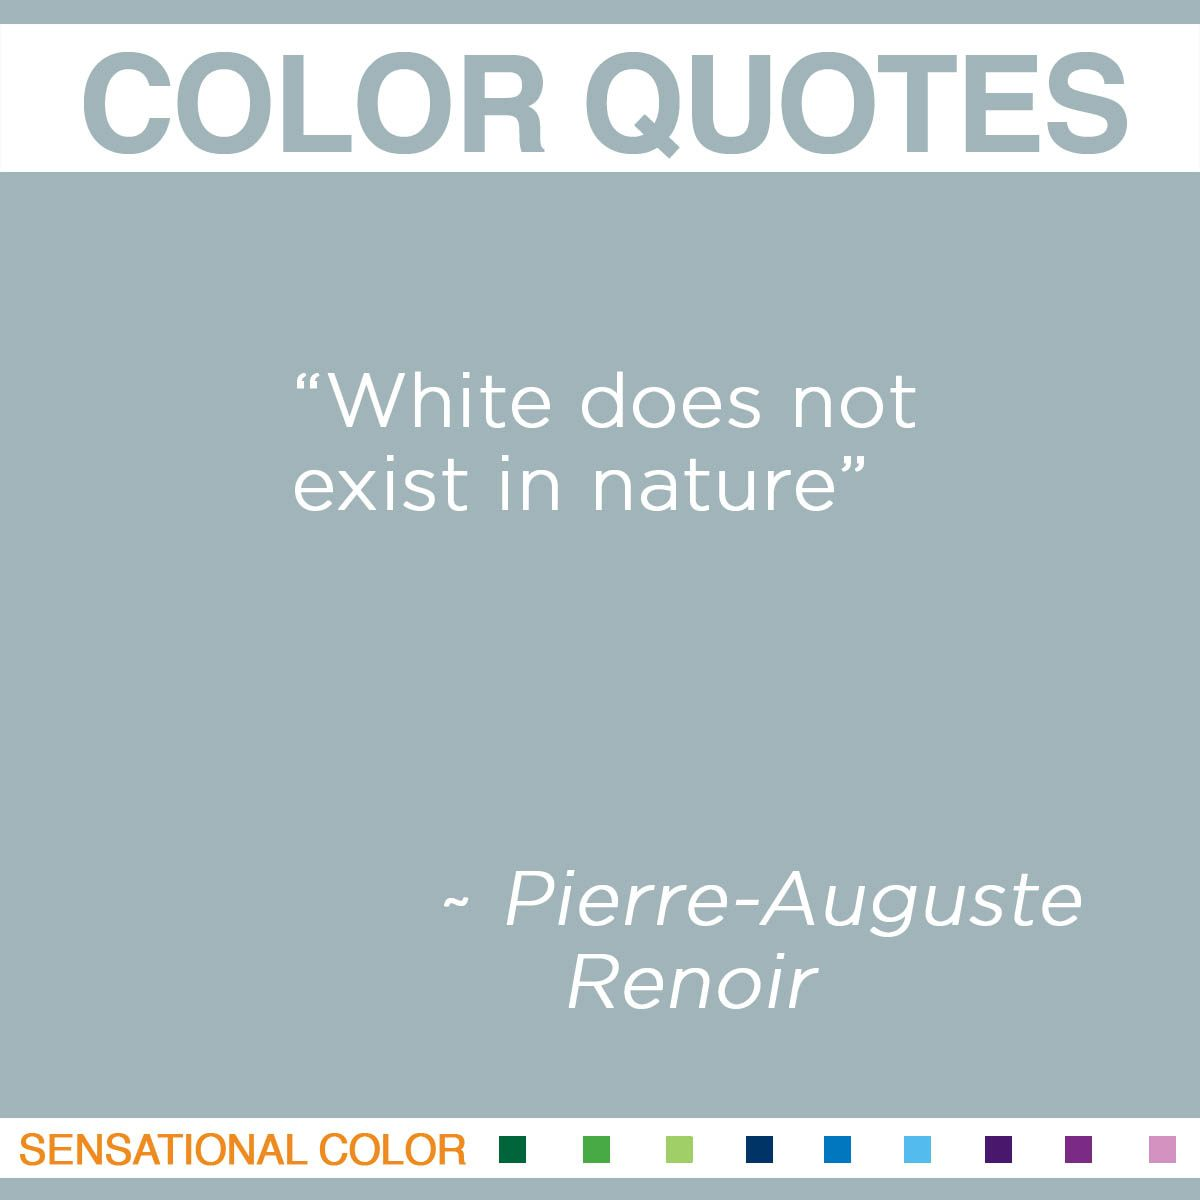 """White does not exist in nature."" - Pierre-Auguste Renoir"